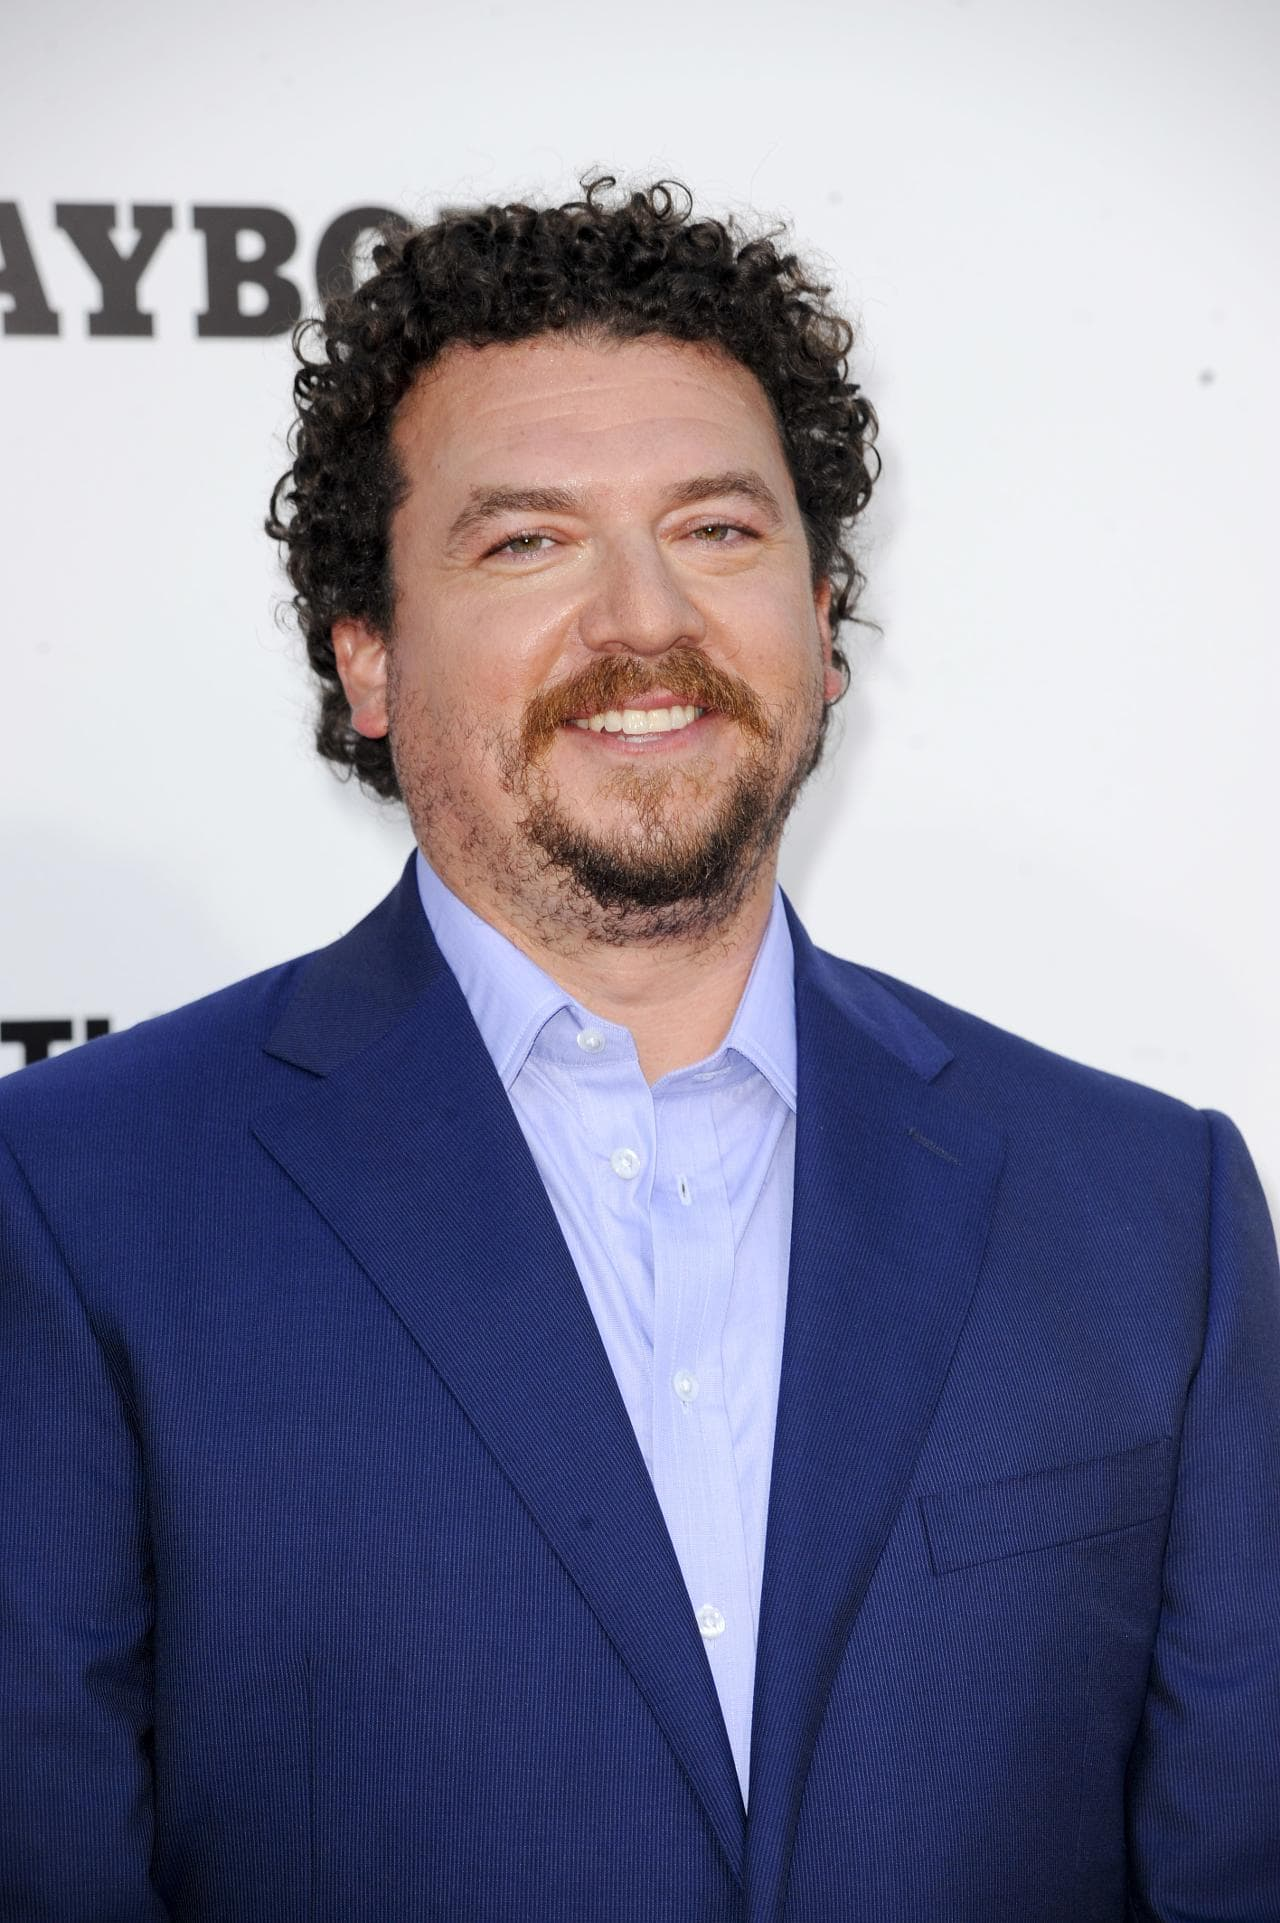 Danny Mcbride Desktop wallpapers